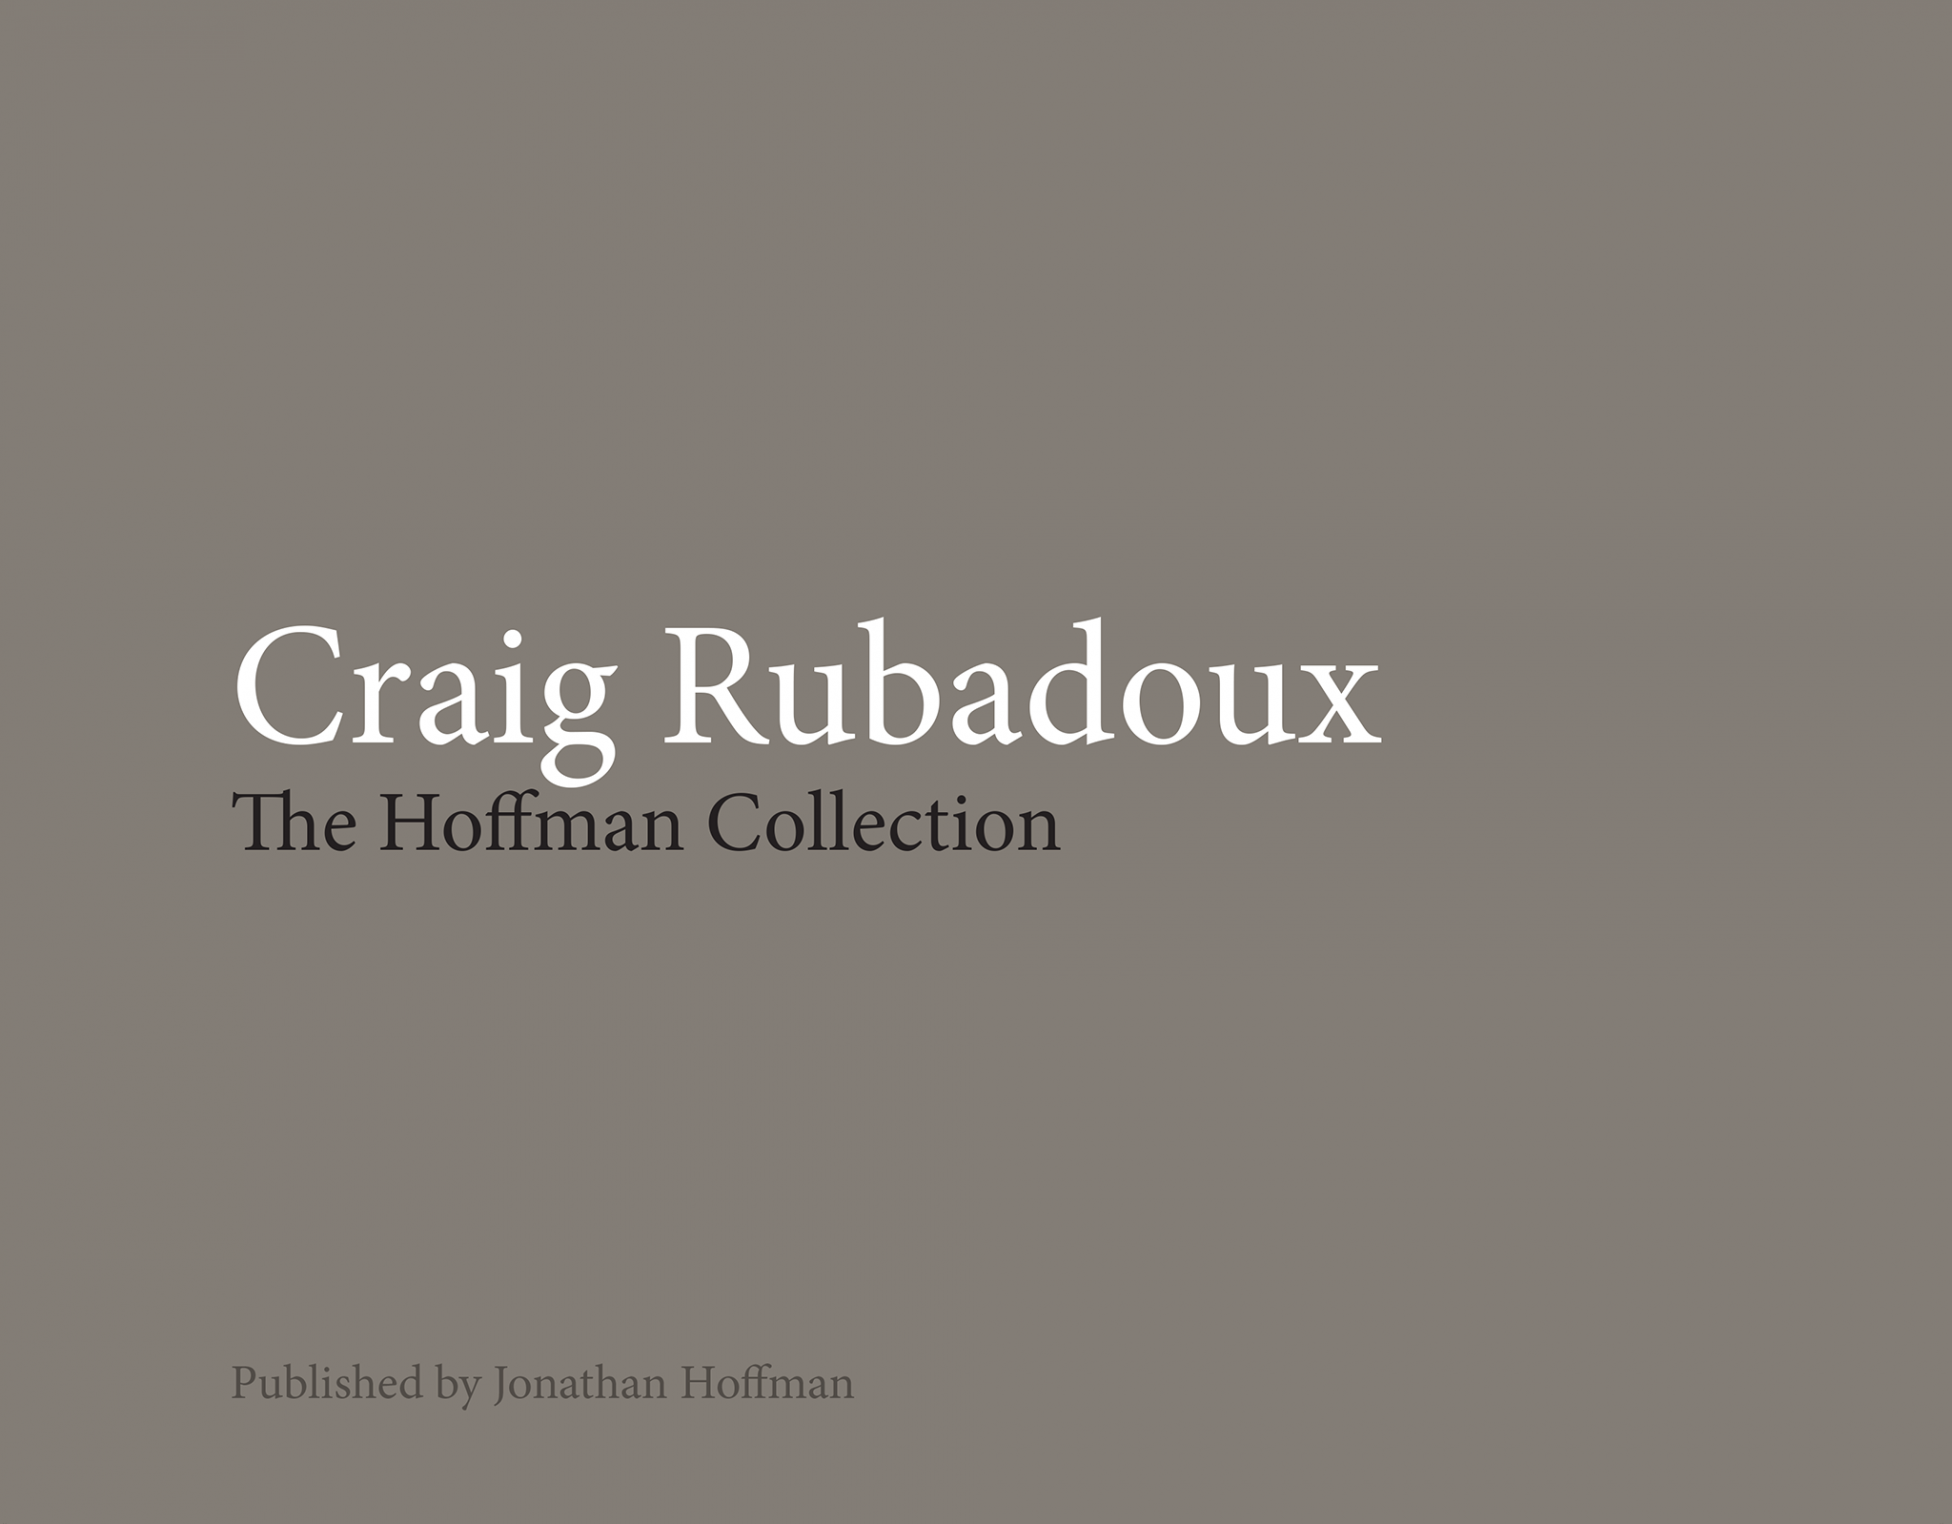 Craig Rubadoux: The Hoffman Collection